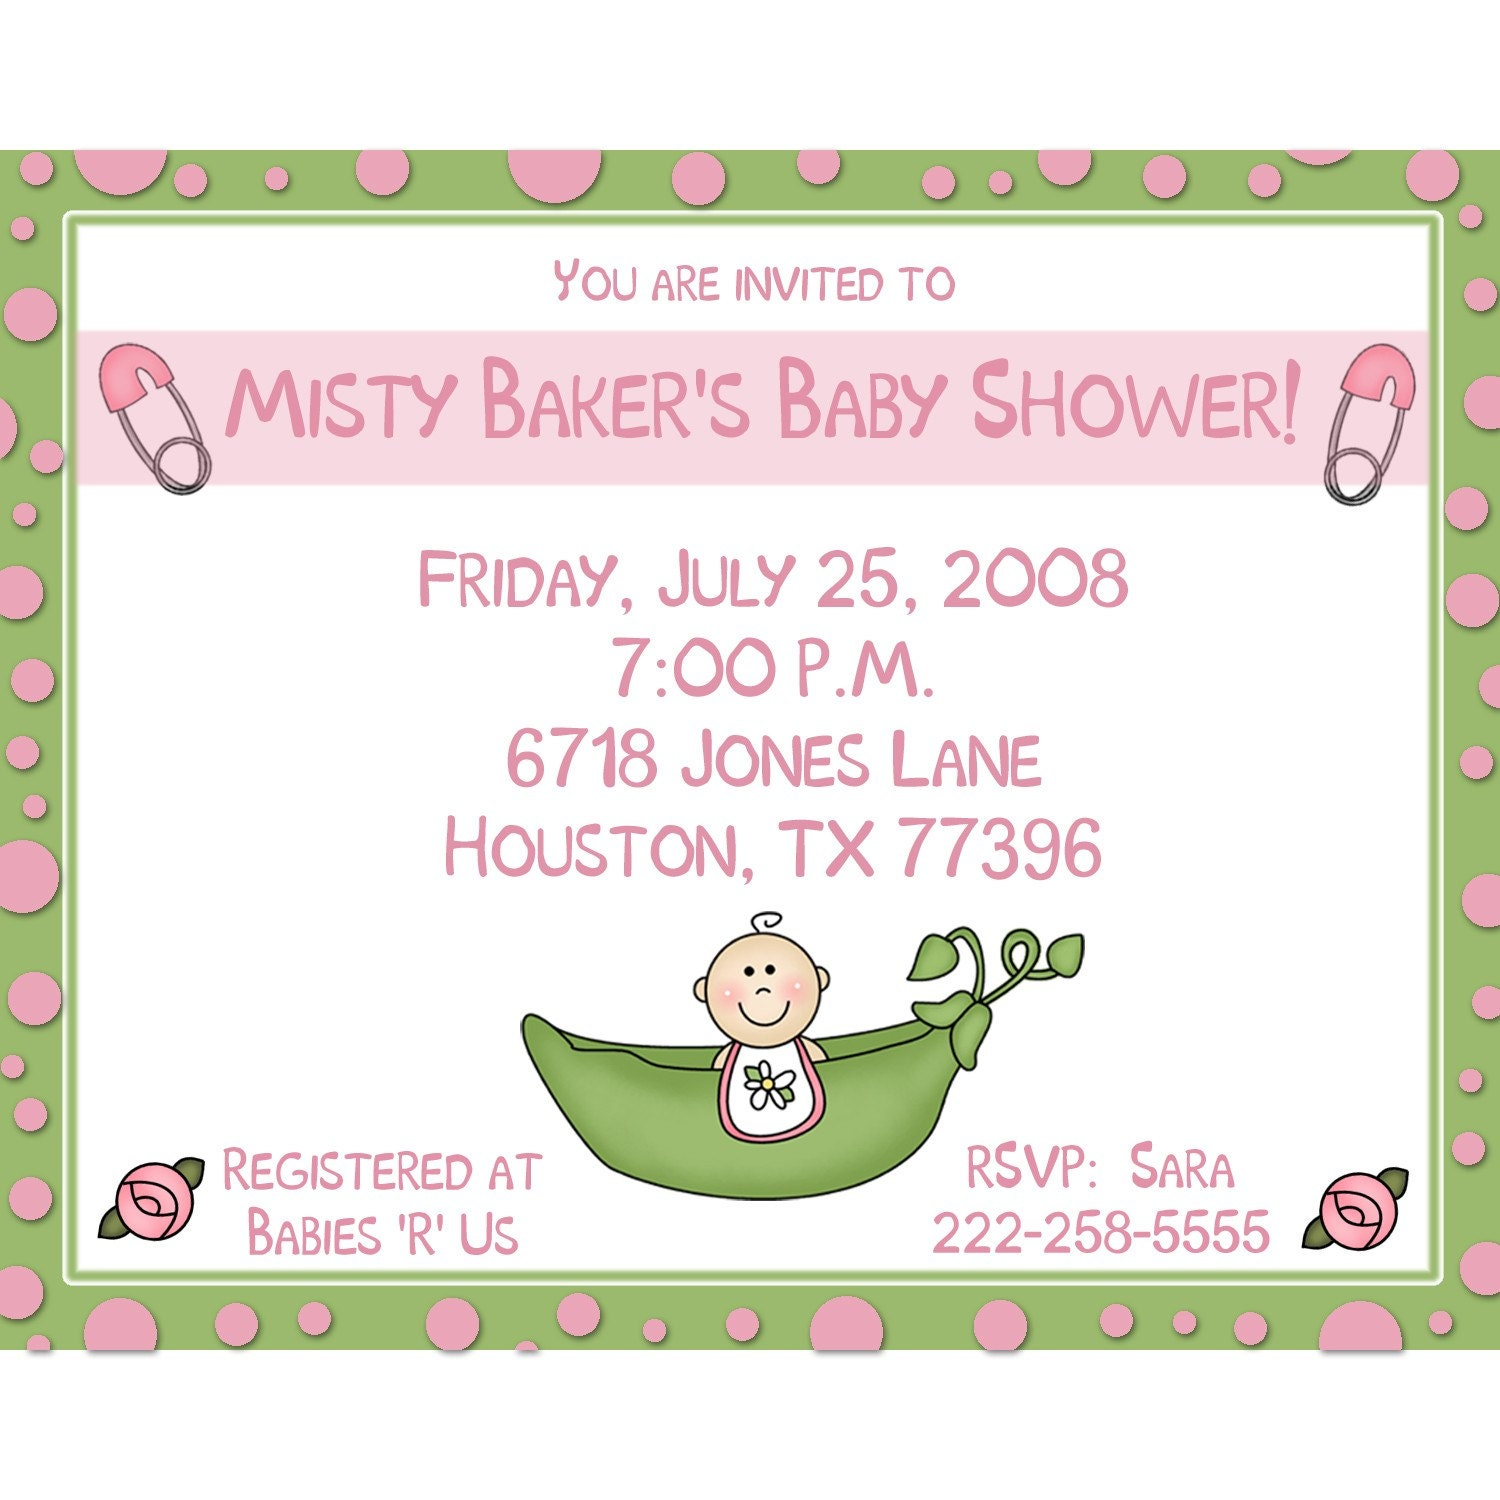 20 personalized baby shower invitations pink sweet pea